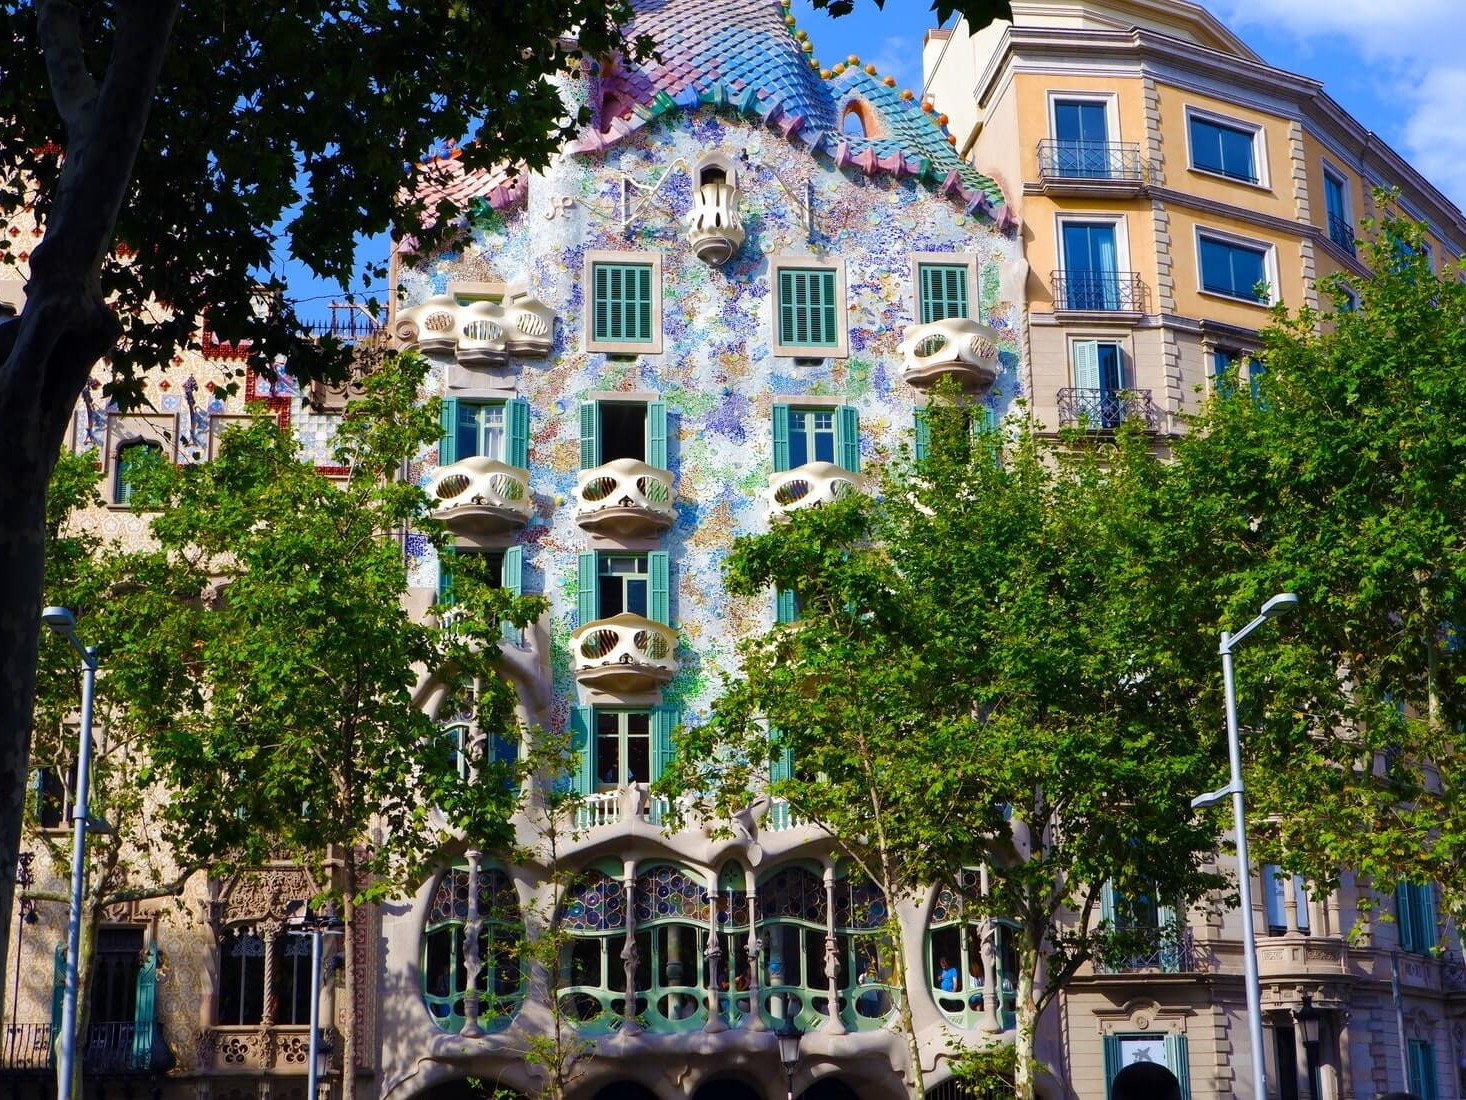 Visiting Barcelona with Kids_ Segway Tour Tips - Featured Image